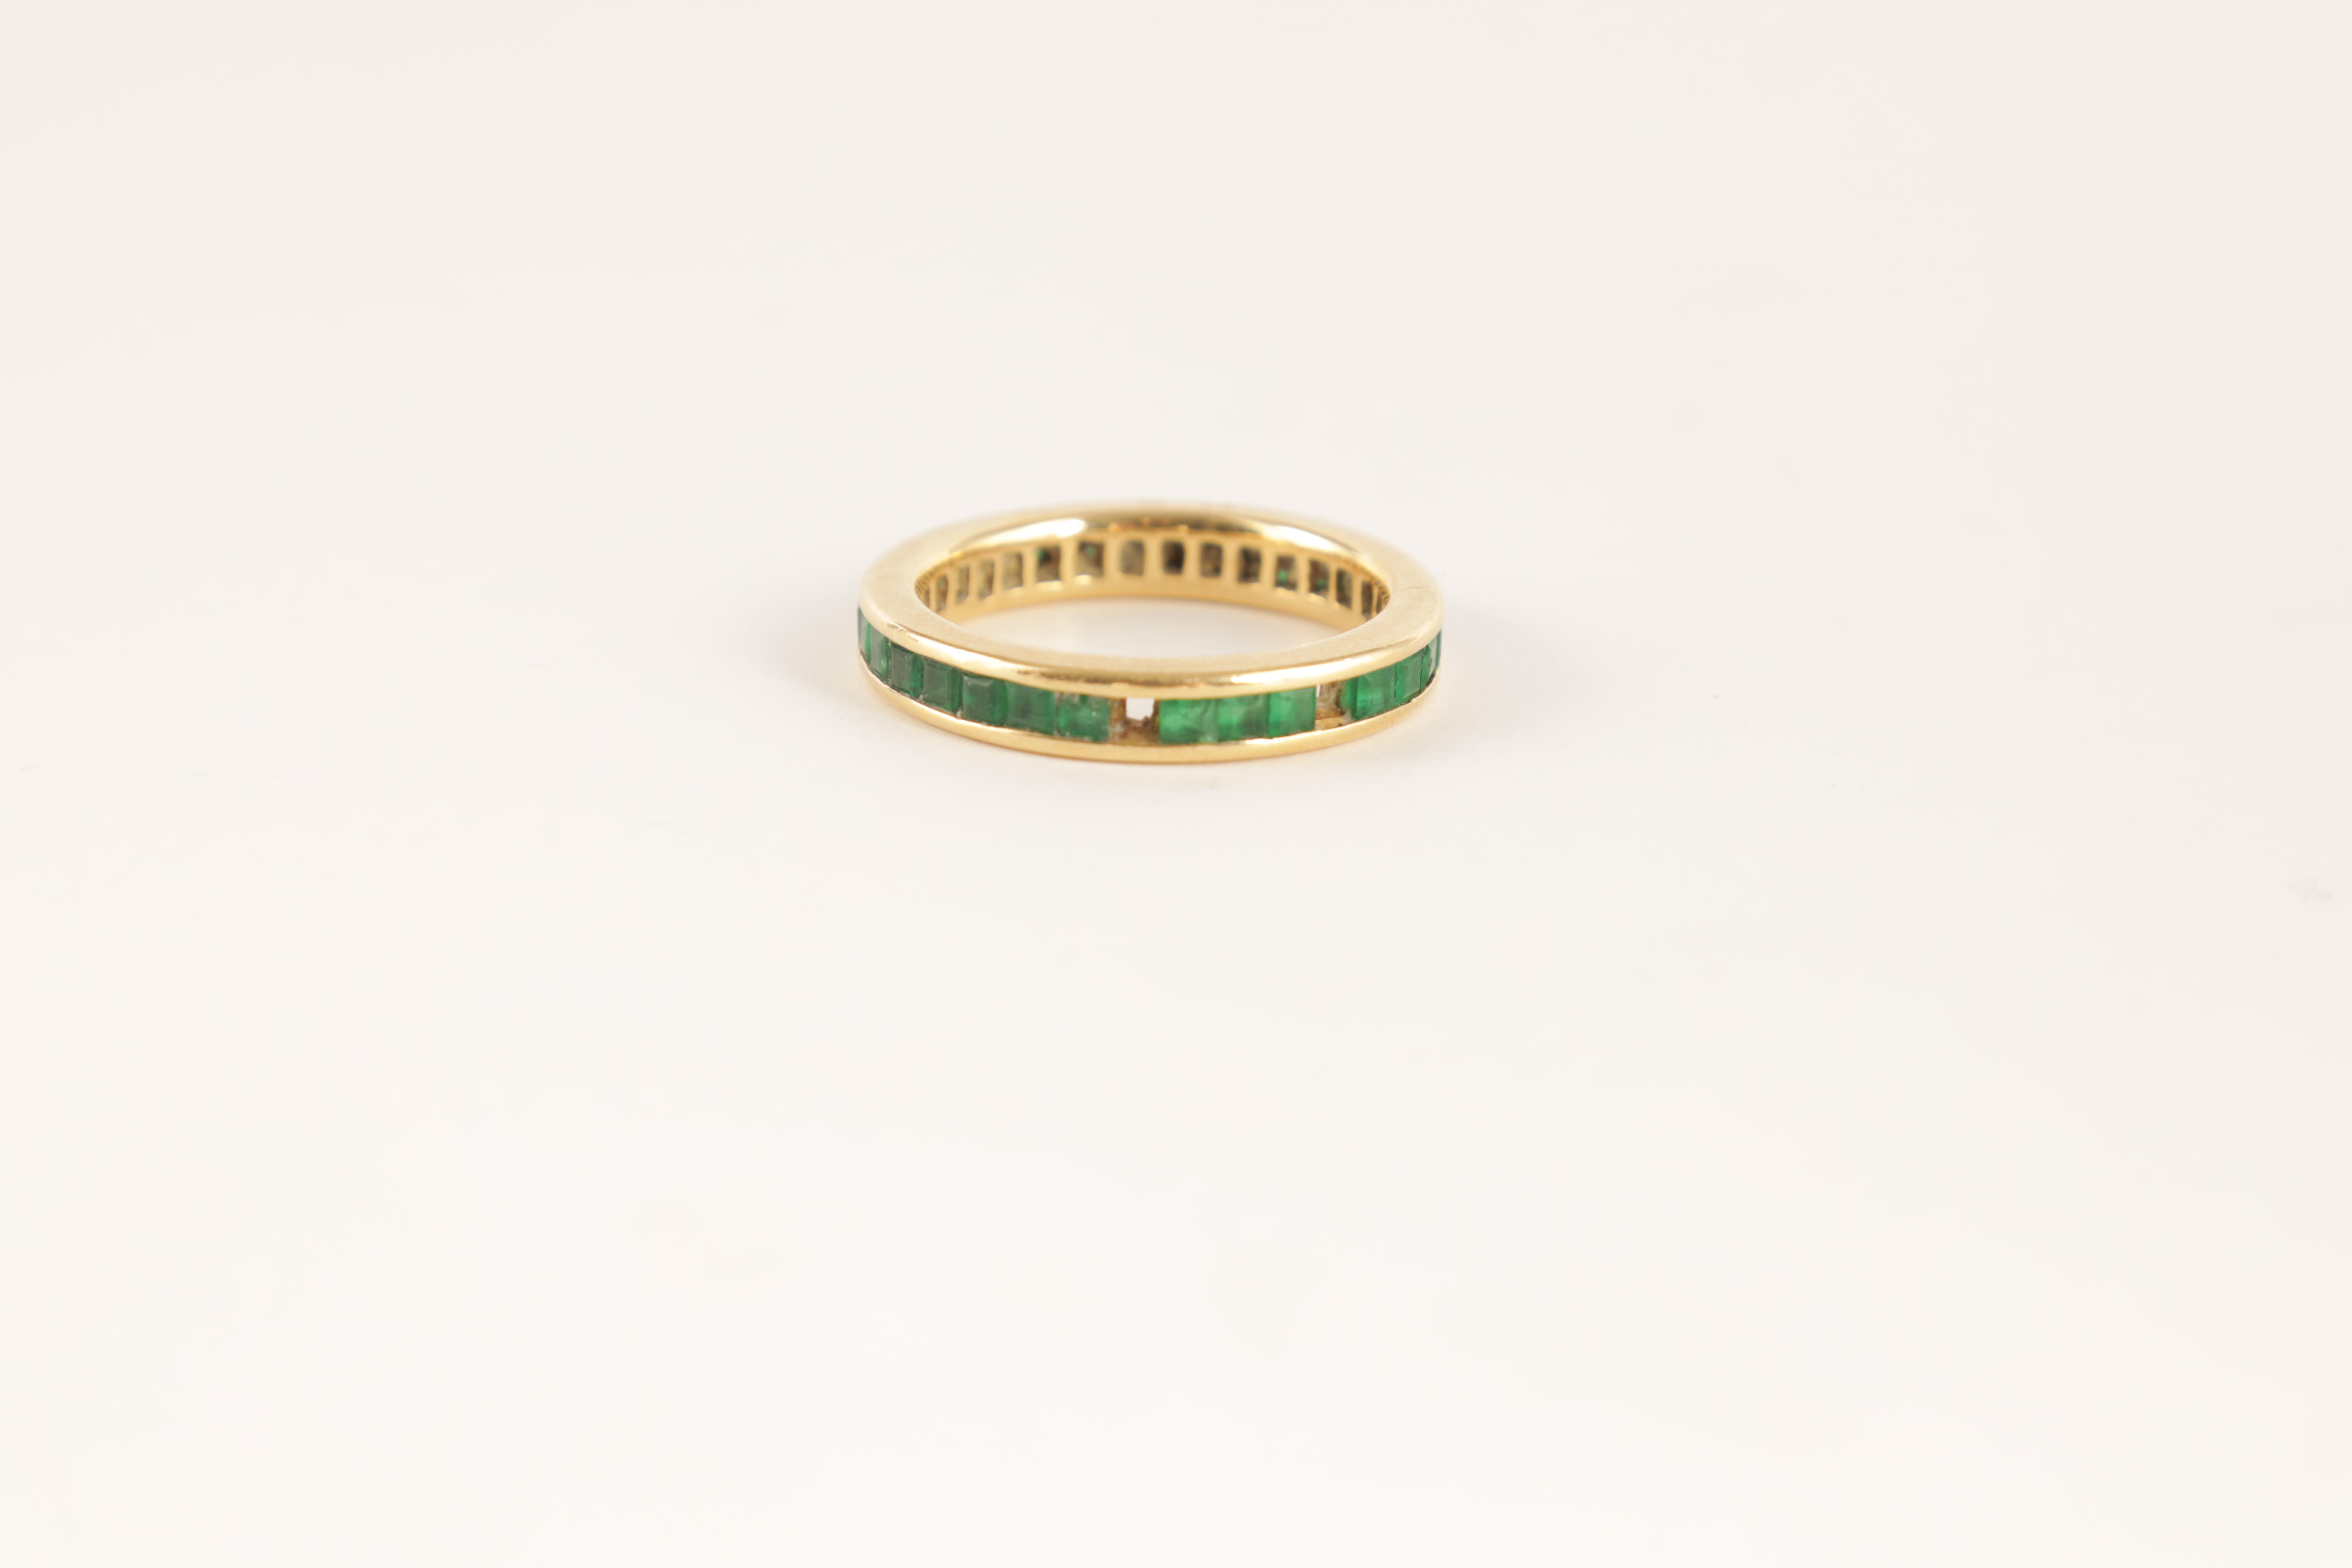 AN 18CT GOLD AND EMERALD ETERNITY RING set all round with square-cut stones, app. weight 4.5g - Image 3 of 5